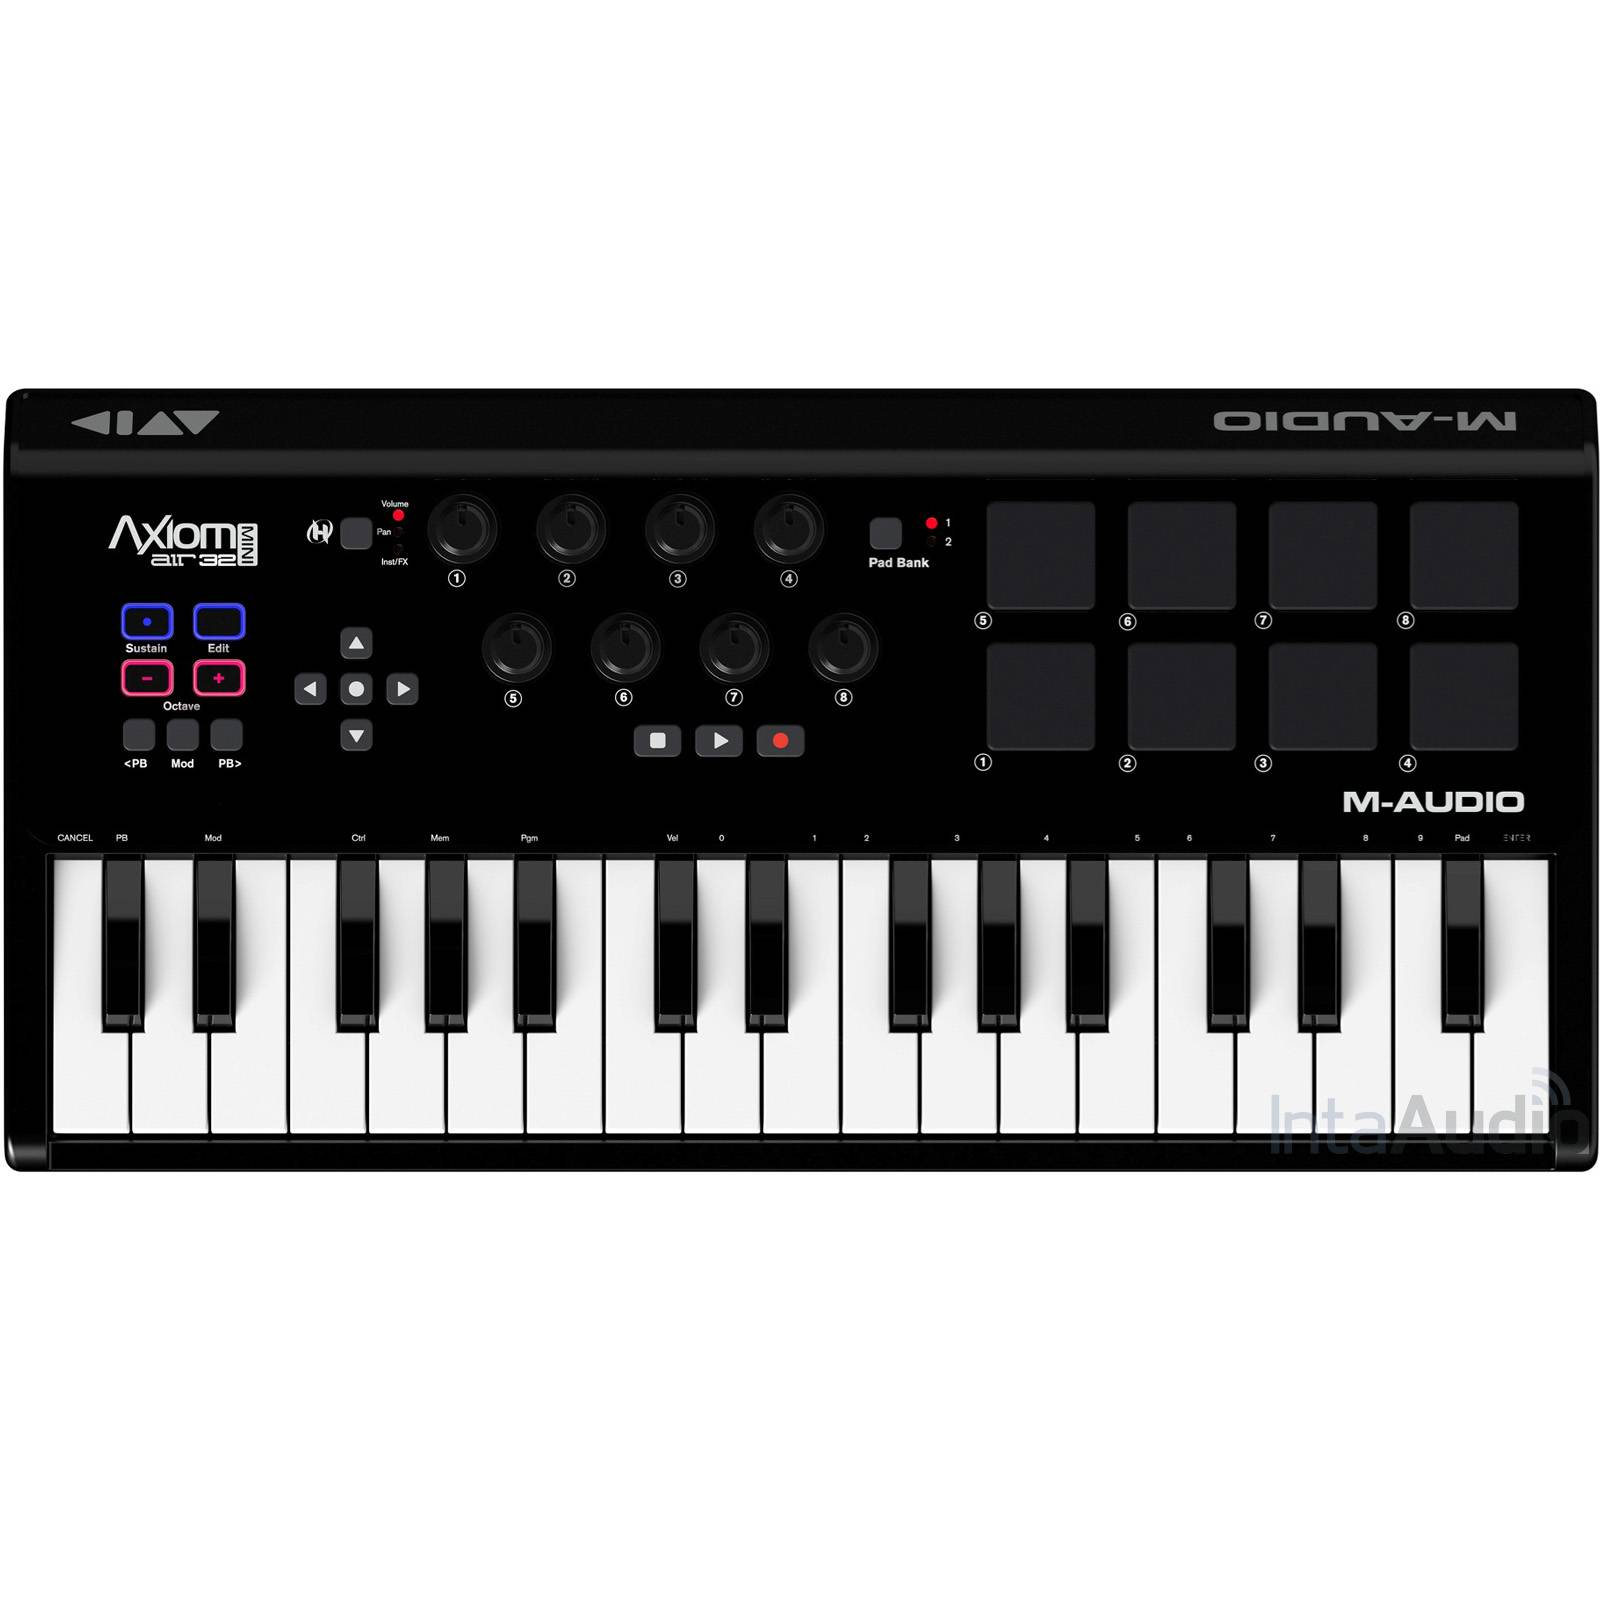 axiom air mini 32 usb midi keyboard and pad controller keyboards midi from inta audio uk. Black Bedroom Furniture Sets. Home Design Ideas